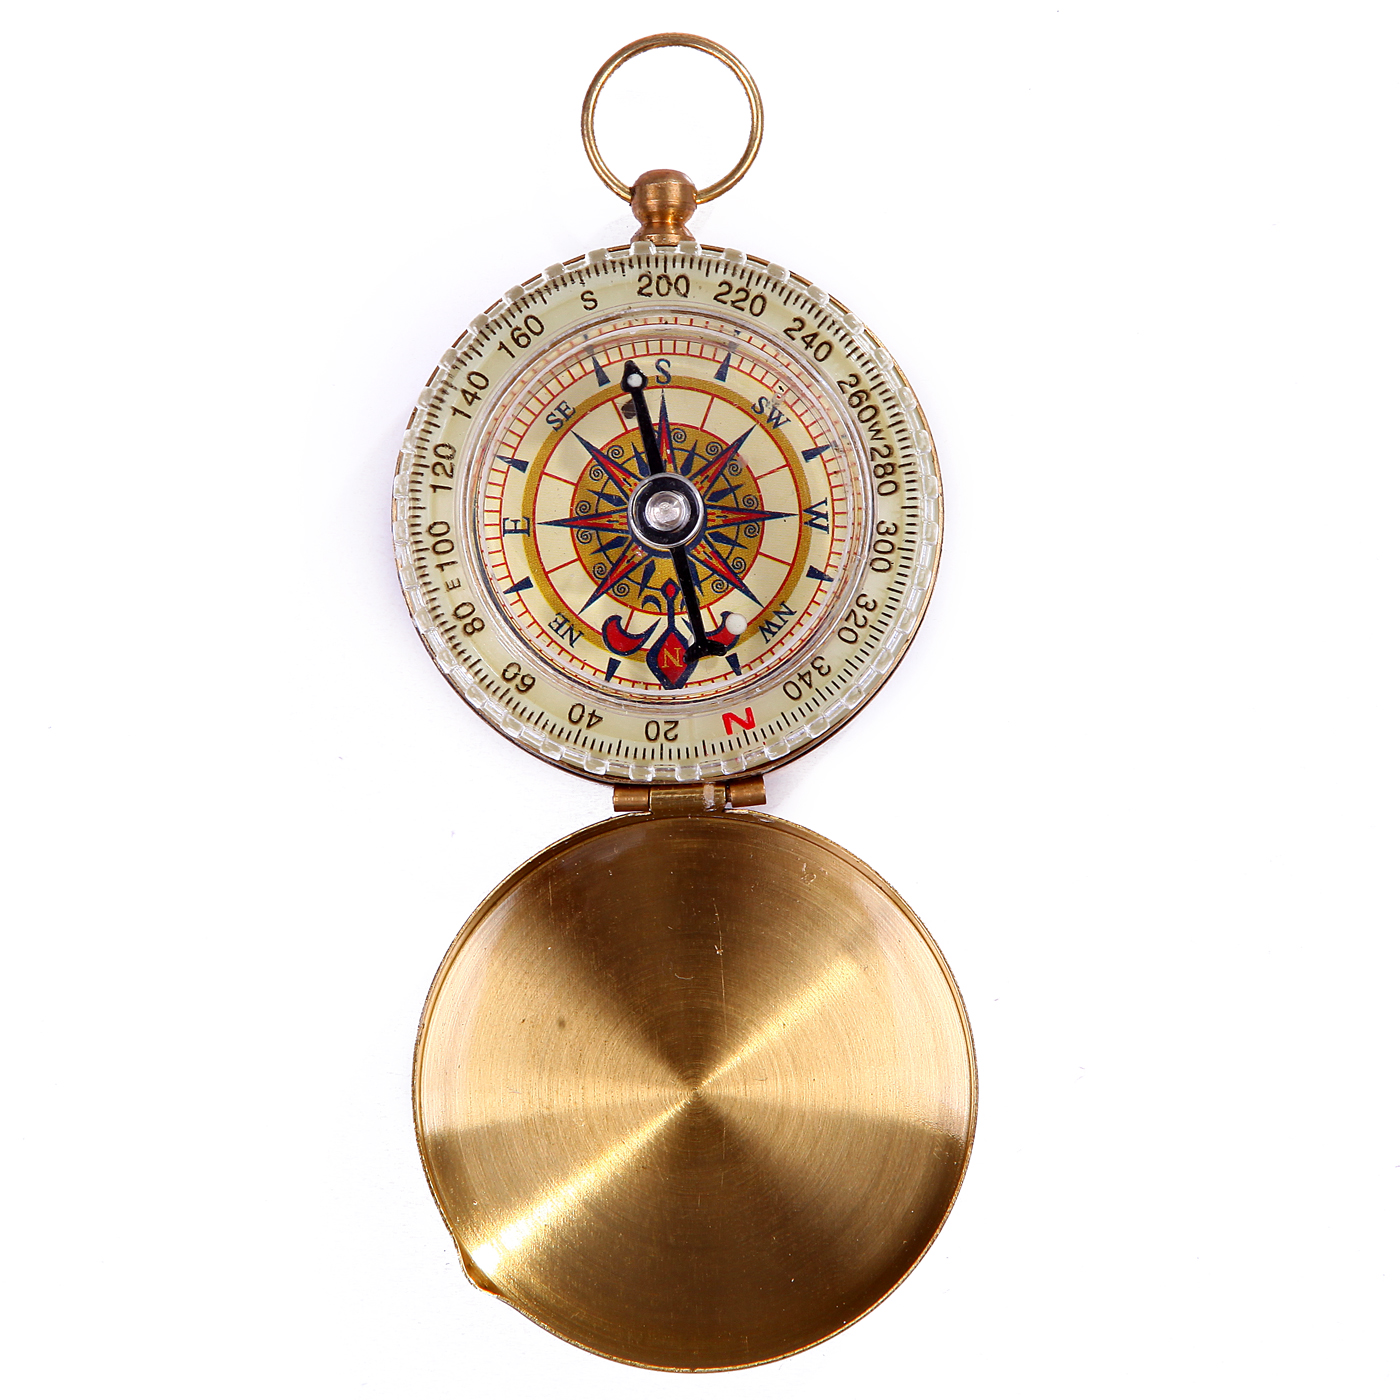 HDE Glow-in-the-Dark Golden Magnetic Pocket Compass for Camping and Hiking